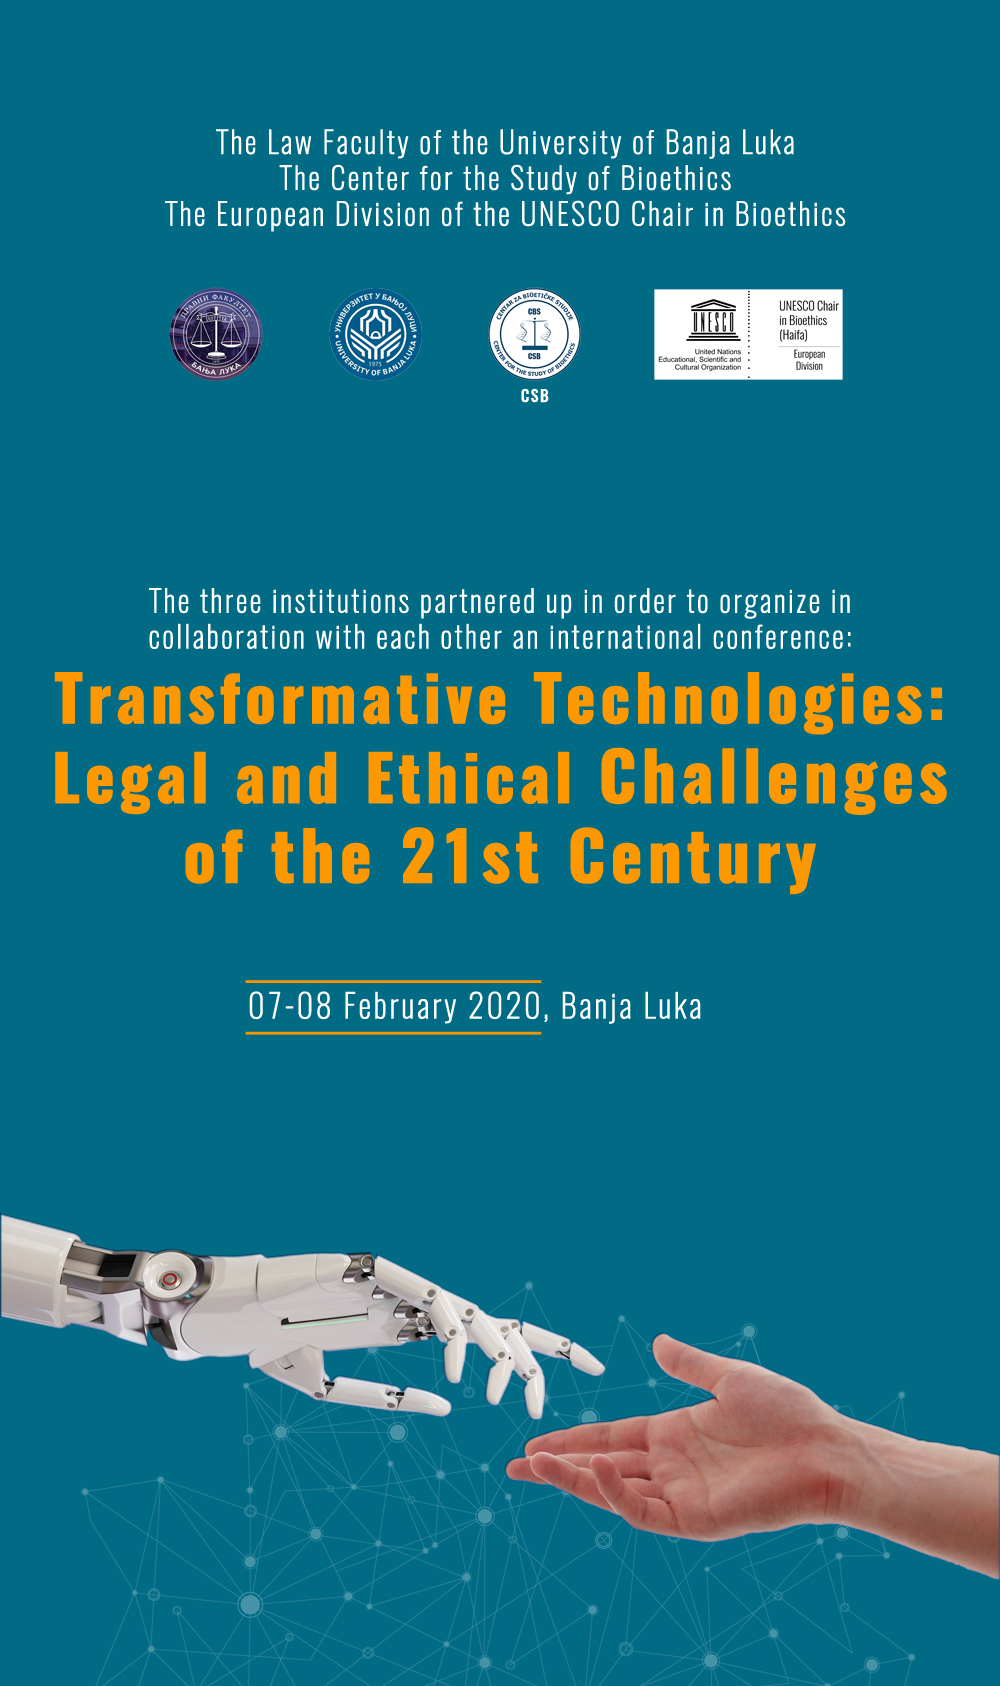 Transformative Technologies: Legal and Ethical Challenges of the 21st Century